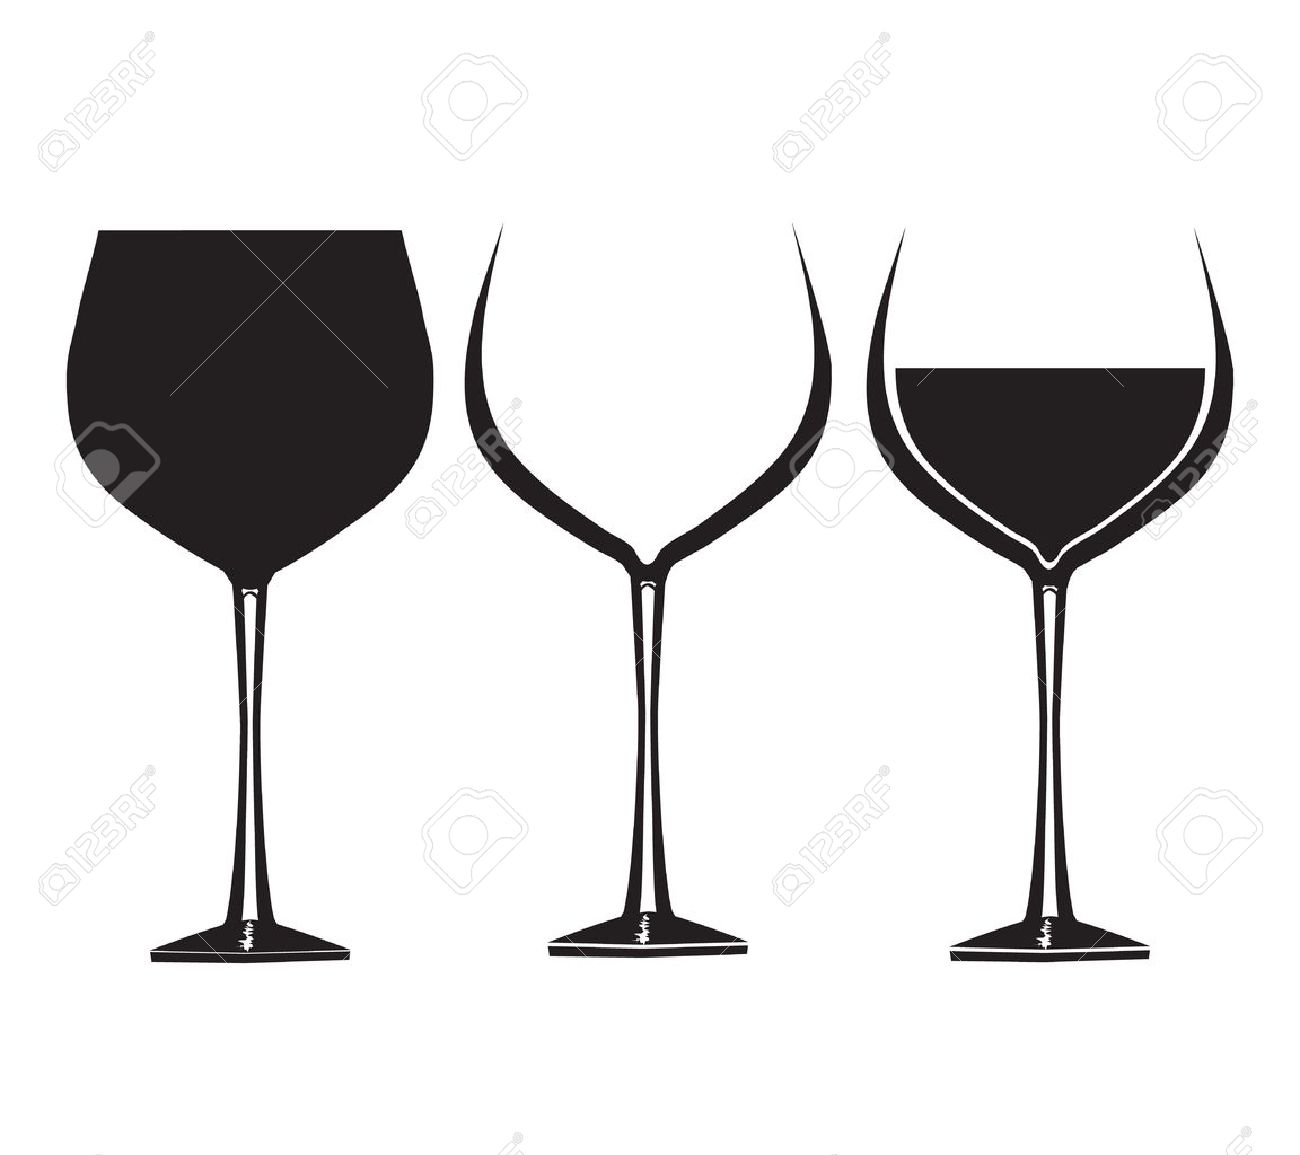 Wine glasses in graphic for use in party or restaurant artwork - 17012164